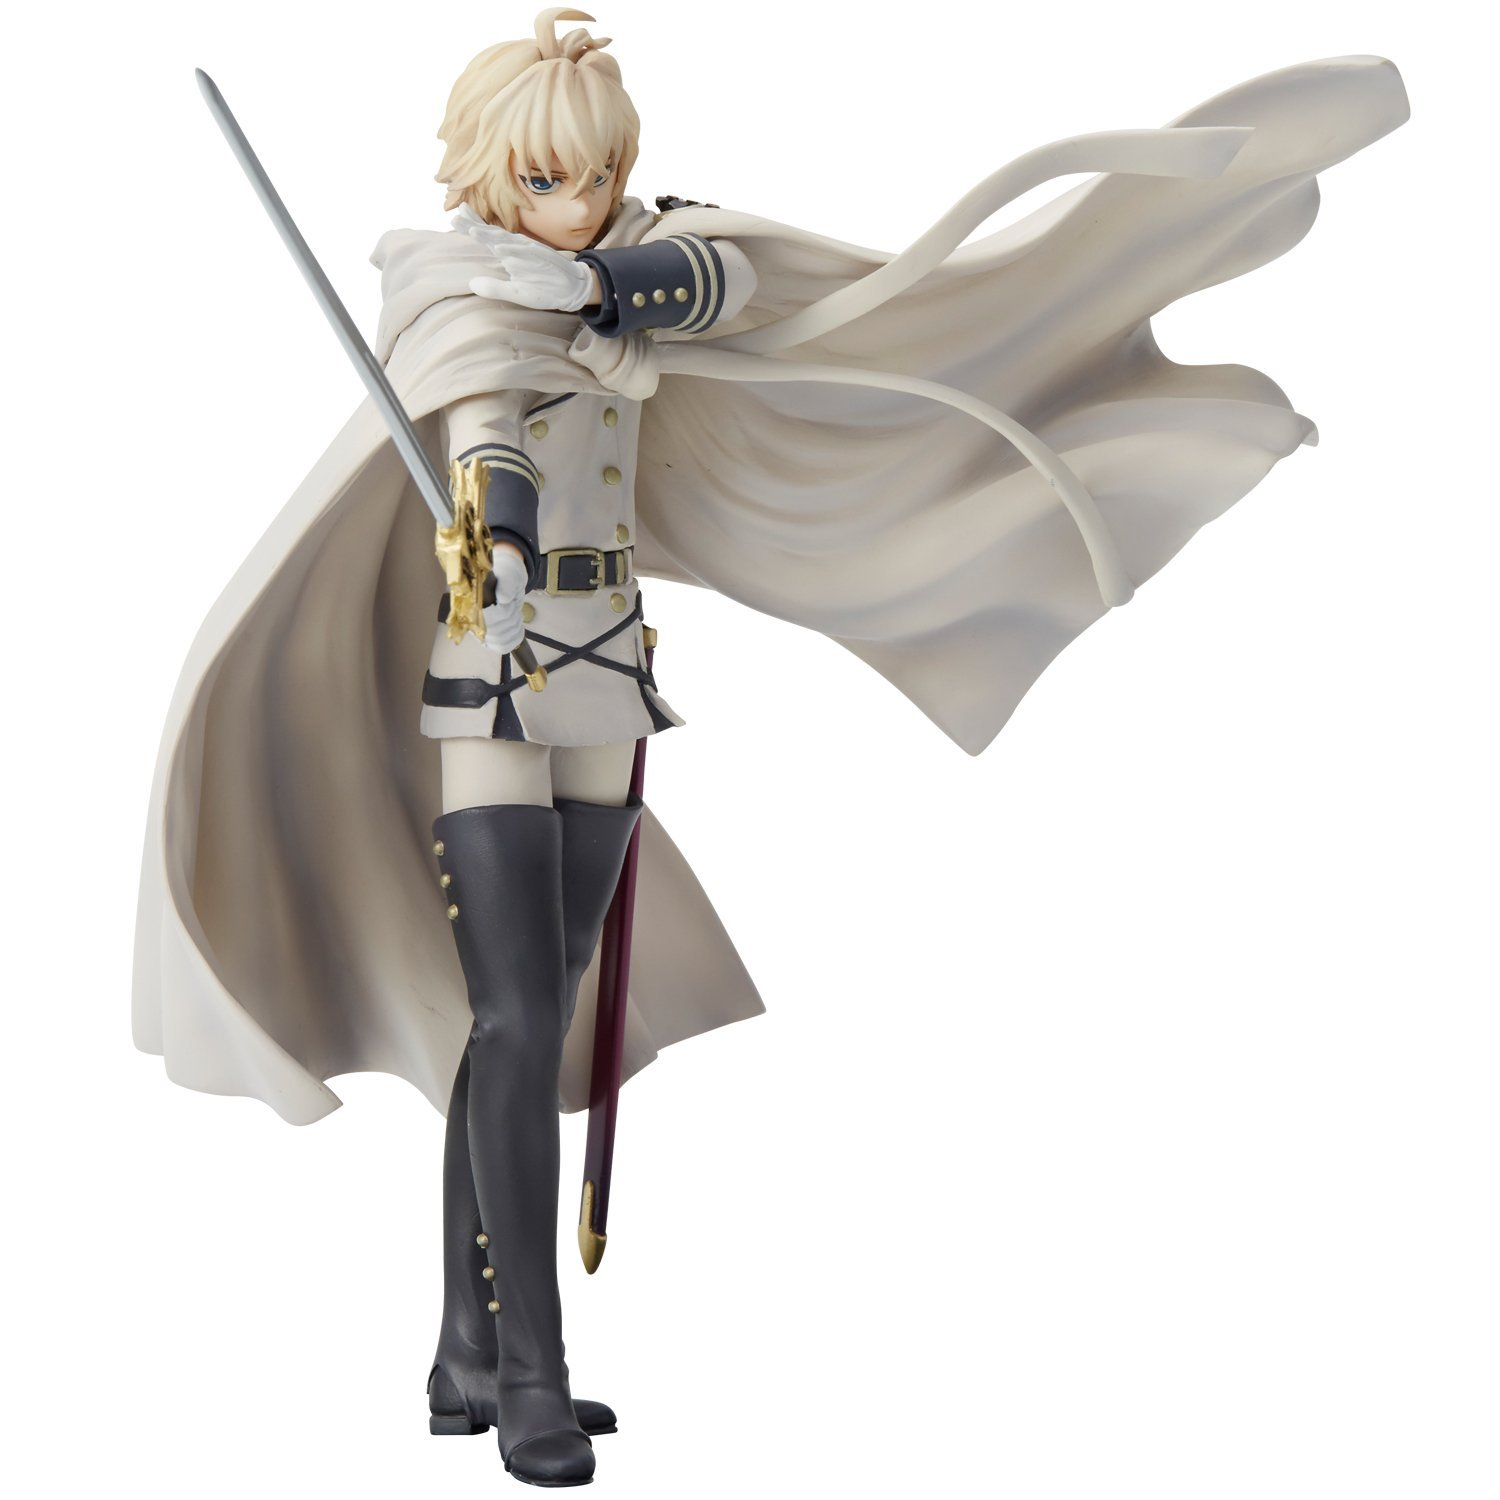 Seraph of the End Union Creative mensHdge Technical Statue No.22 Mikaela Hyakuya Figure Rinkya